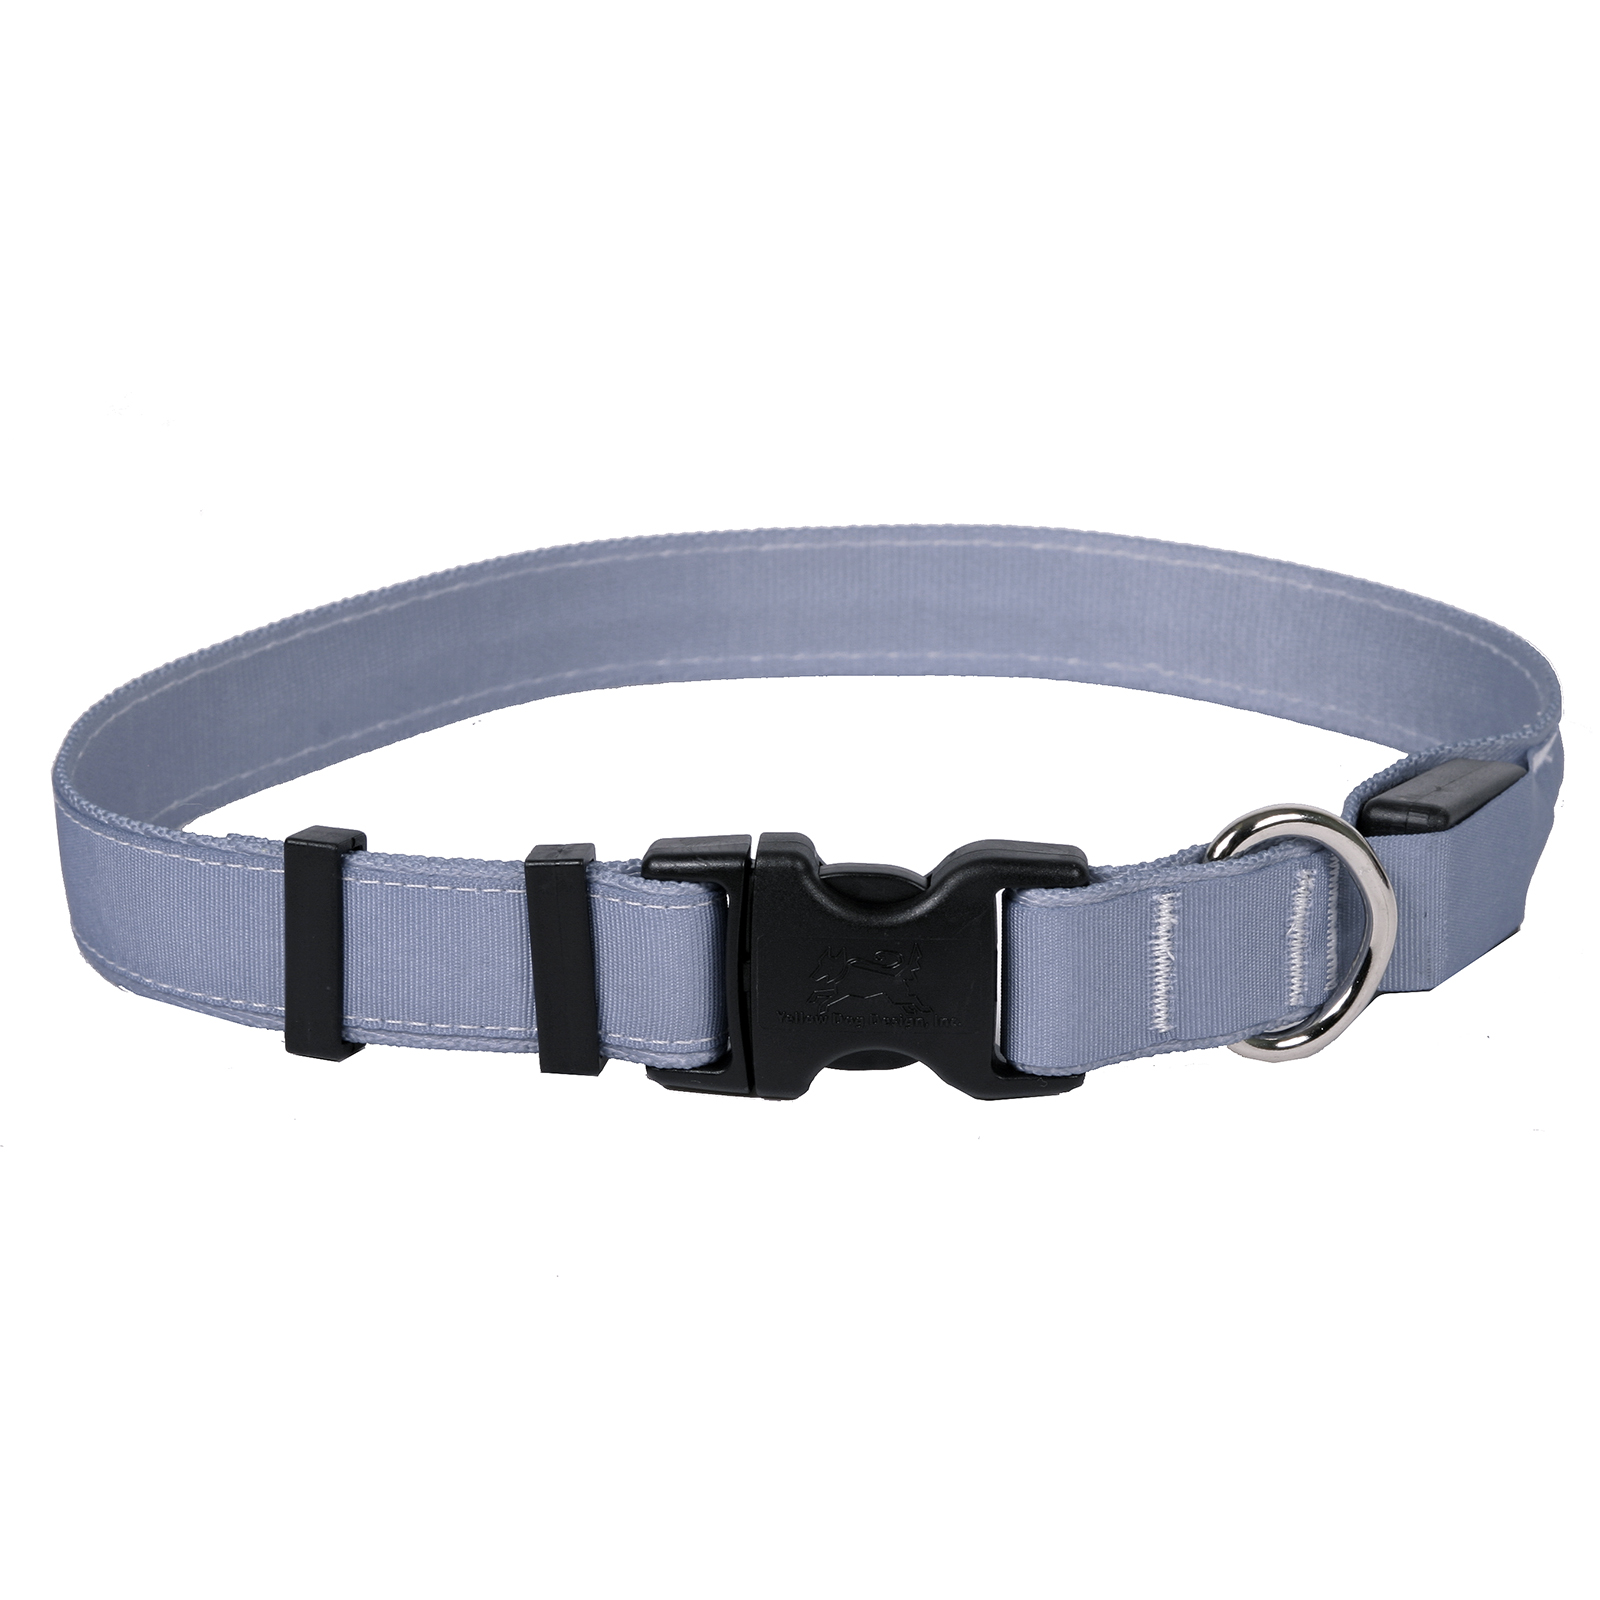 Solid Gray ORION LED Dog Collar